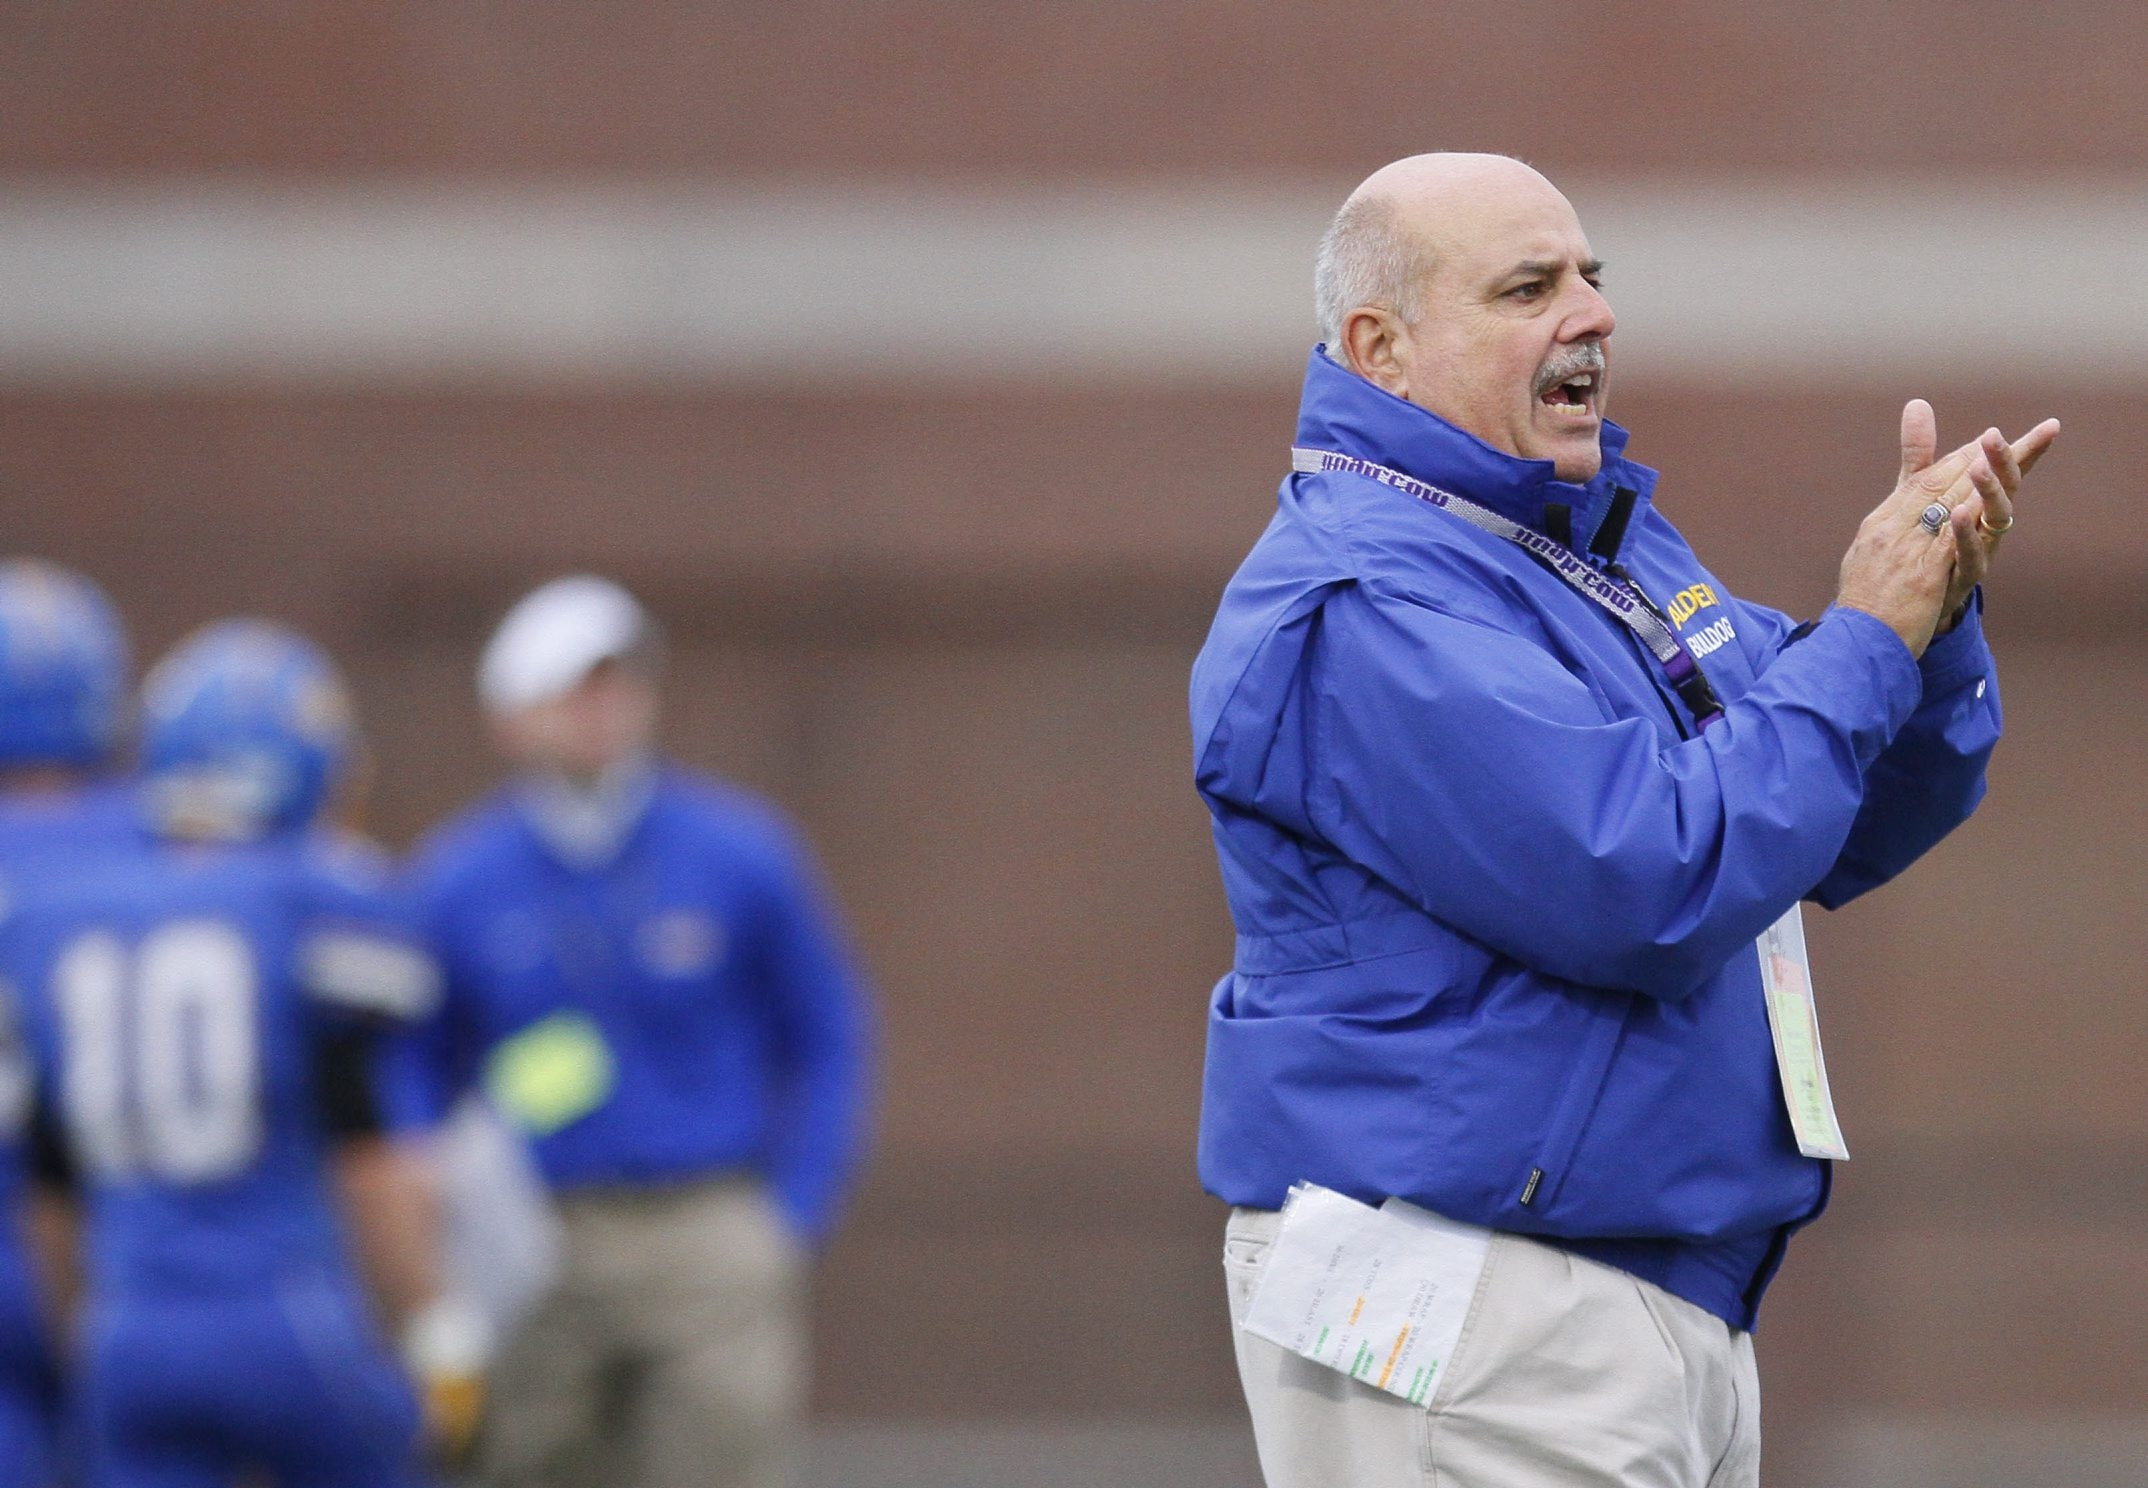 Dick Diminuco earned 242 wins coaching football at Albion and Alden.